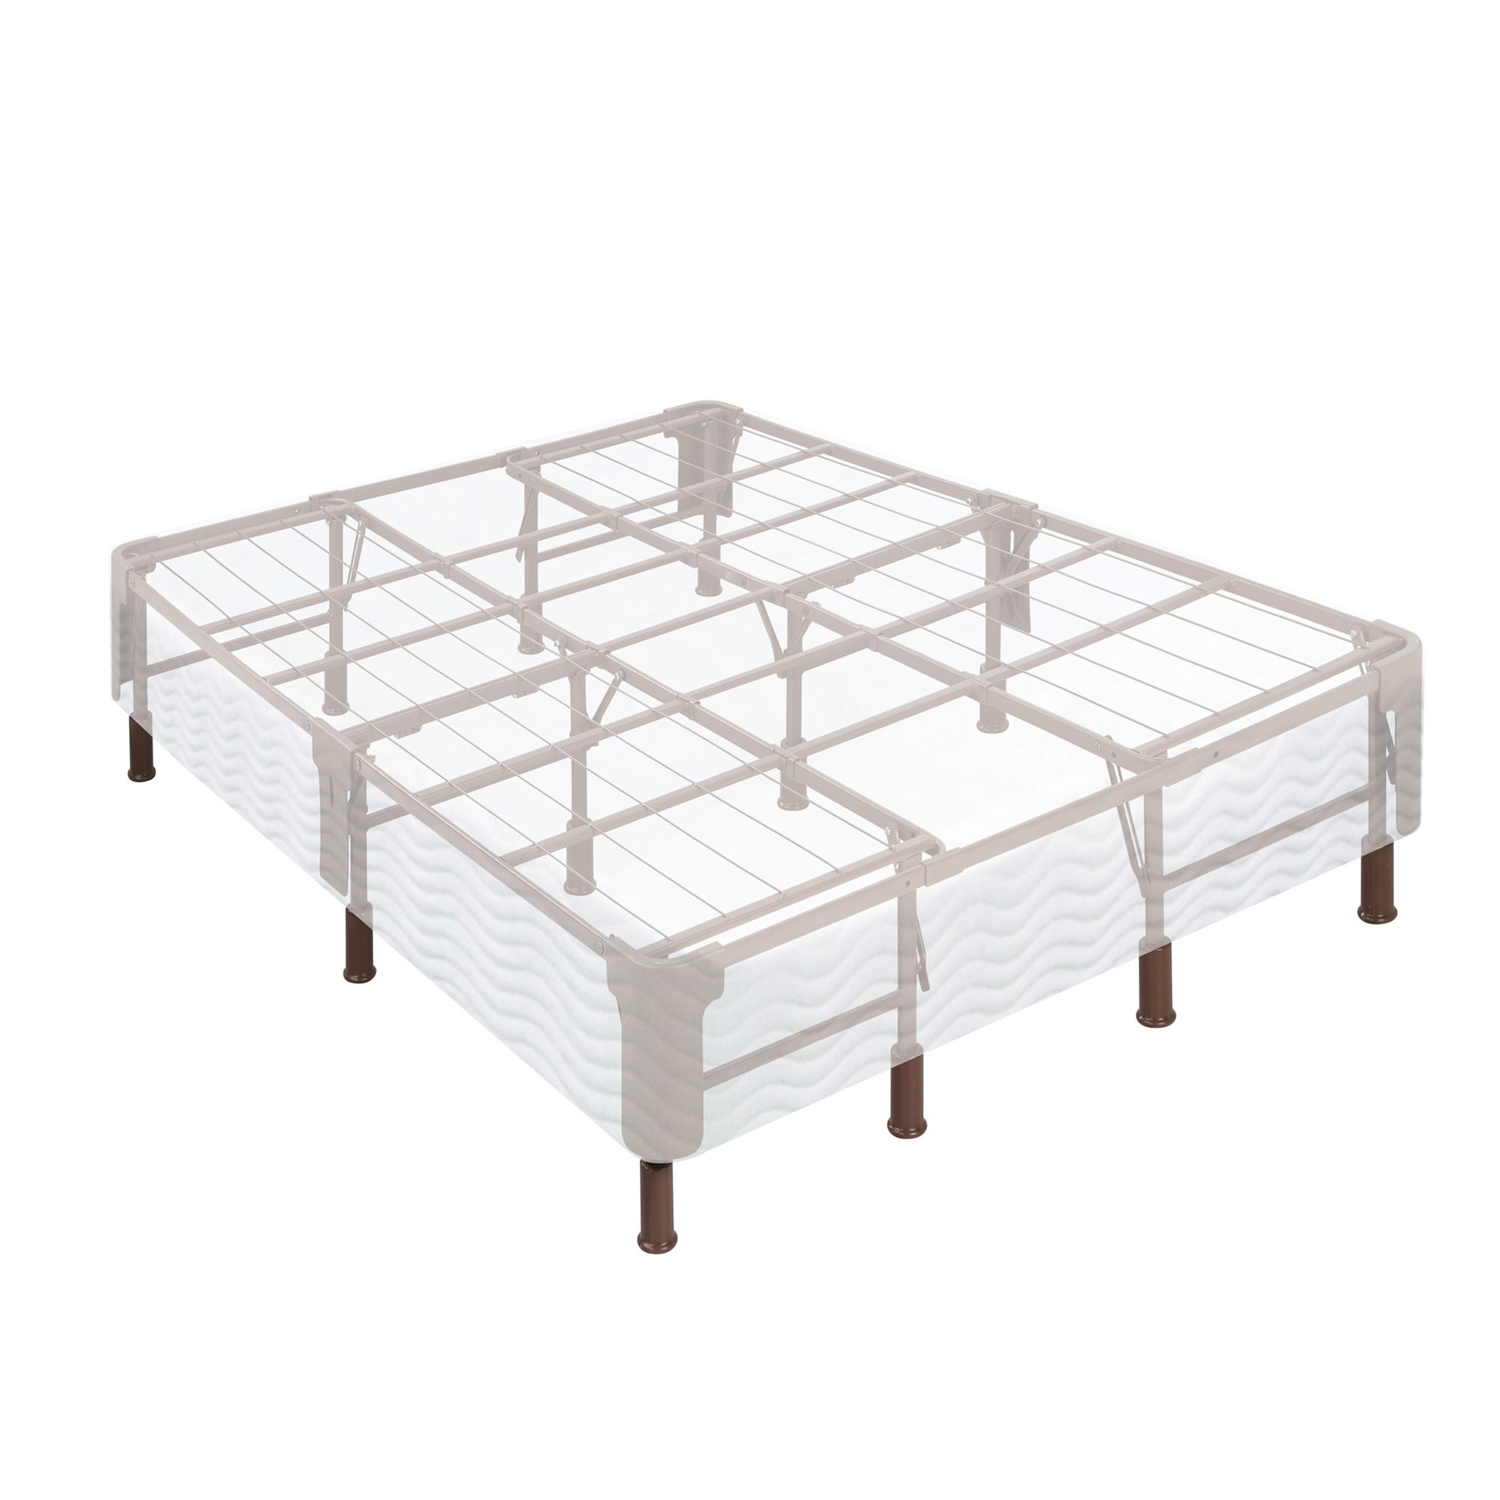 Bed Frames With Box Spring